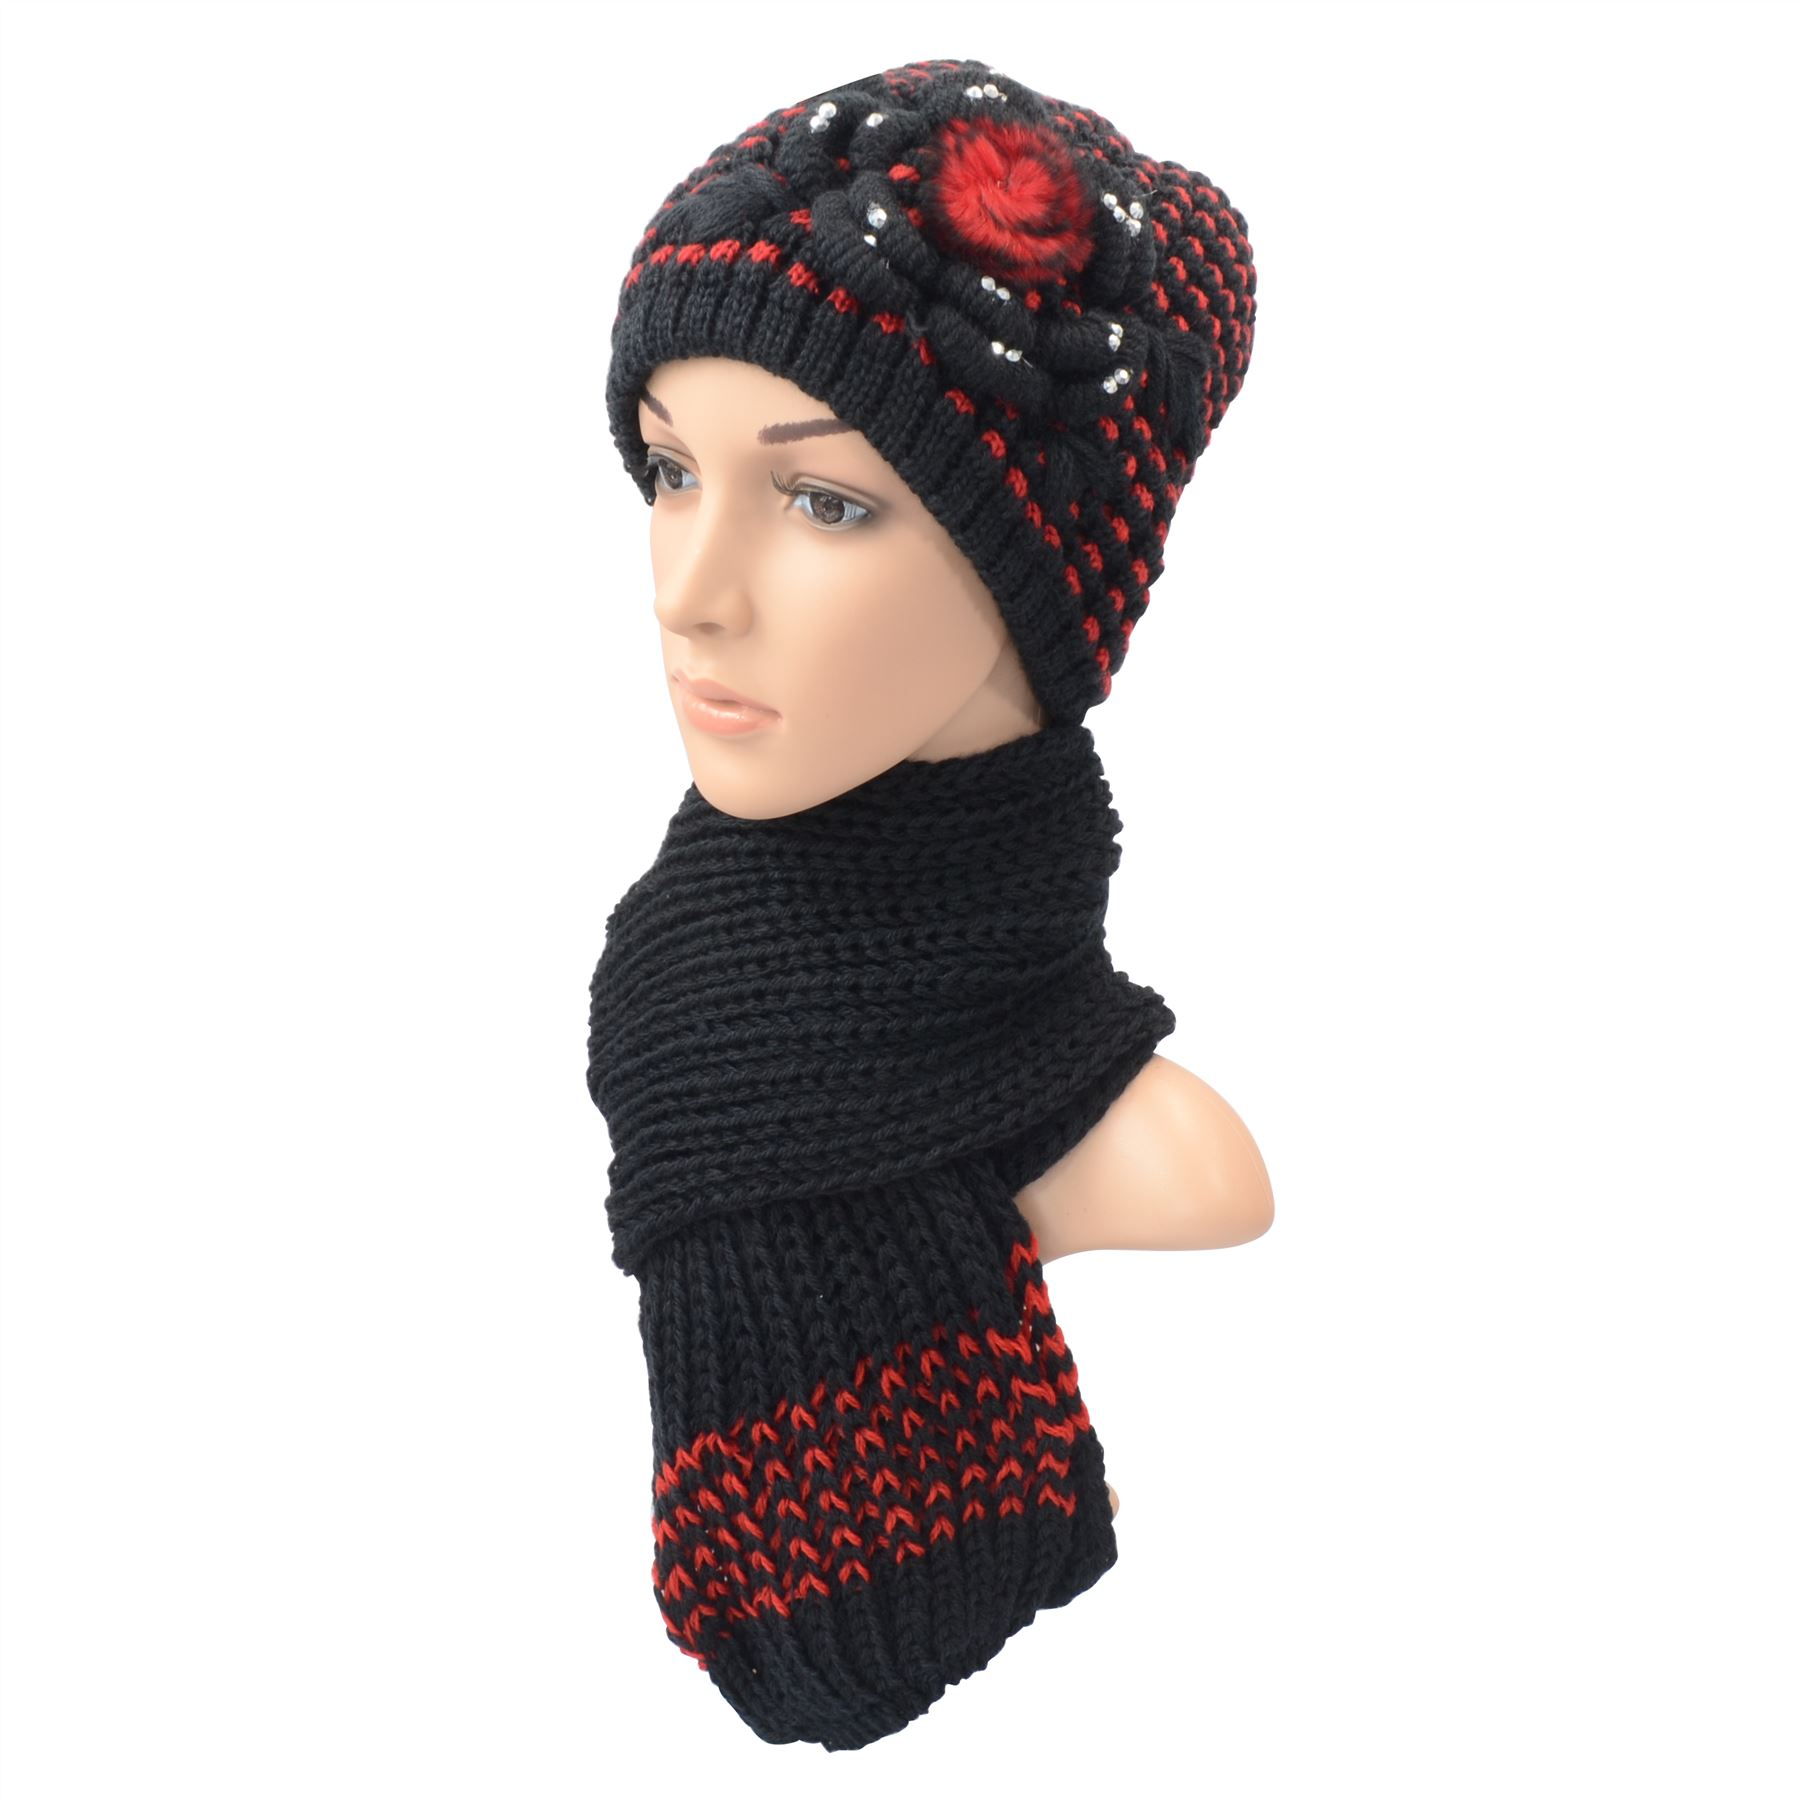 Hats And Scarves. Match your favorite coat with a new set of warm hats and scarves for a fun adventure in cold weather. Whether you like a cashmere scarf or a knit beanie, you can find the scarf that matches your coat and your personality.. Gray or black beanie hats and scarves come with matching fingerless gloves for an easily-matched set that keeps things simple.